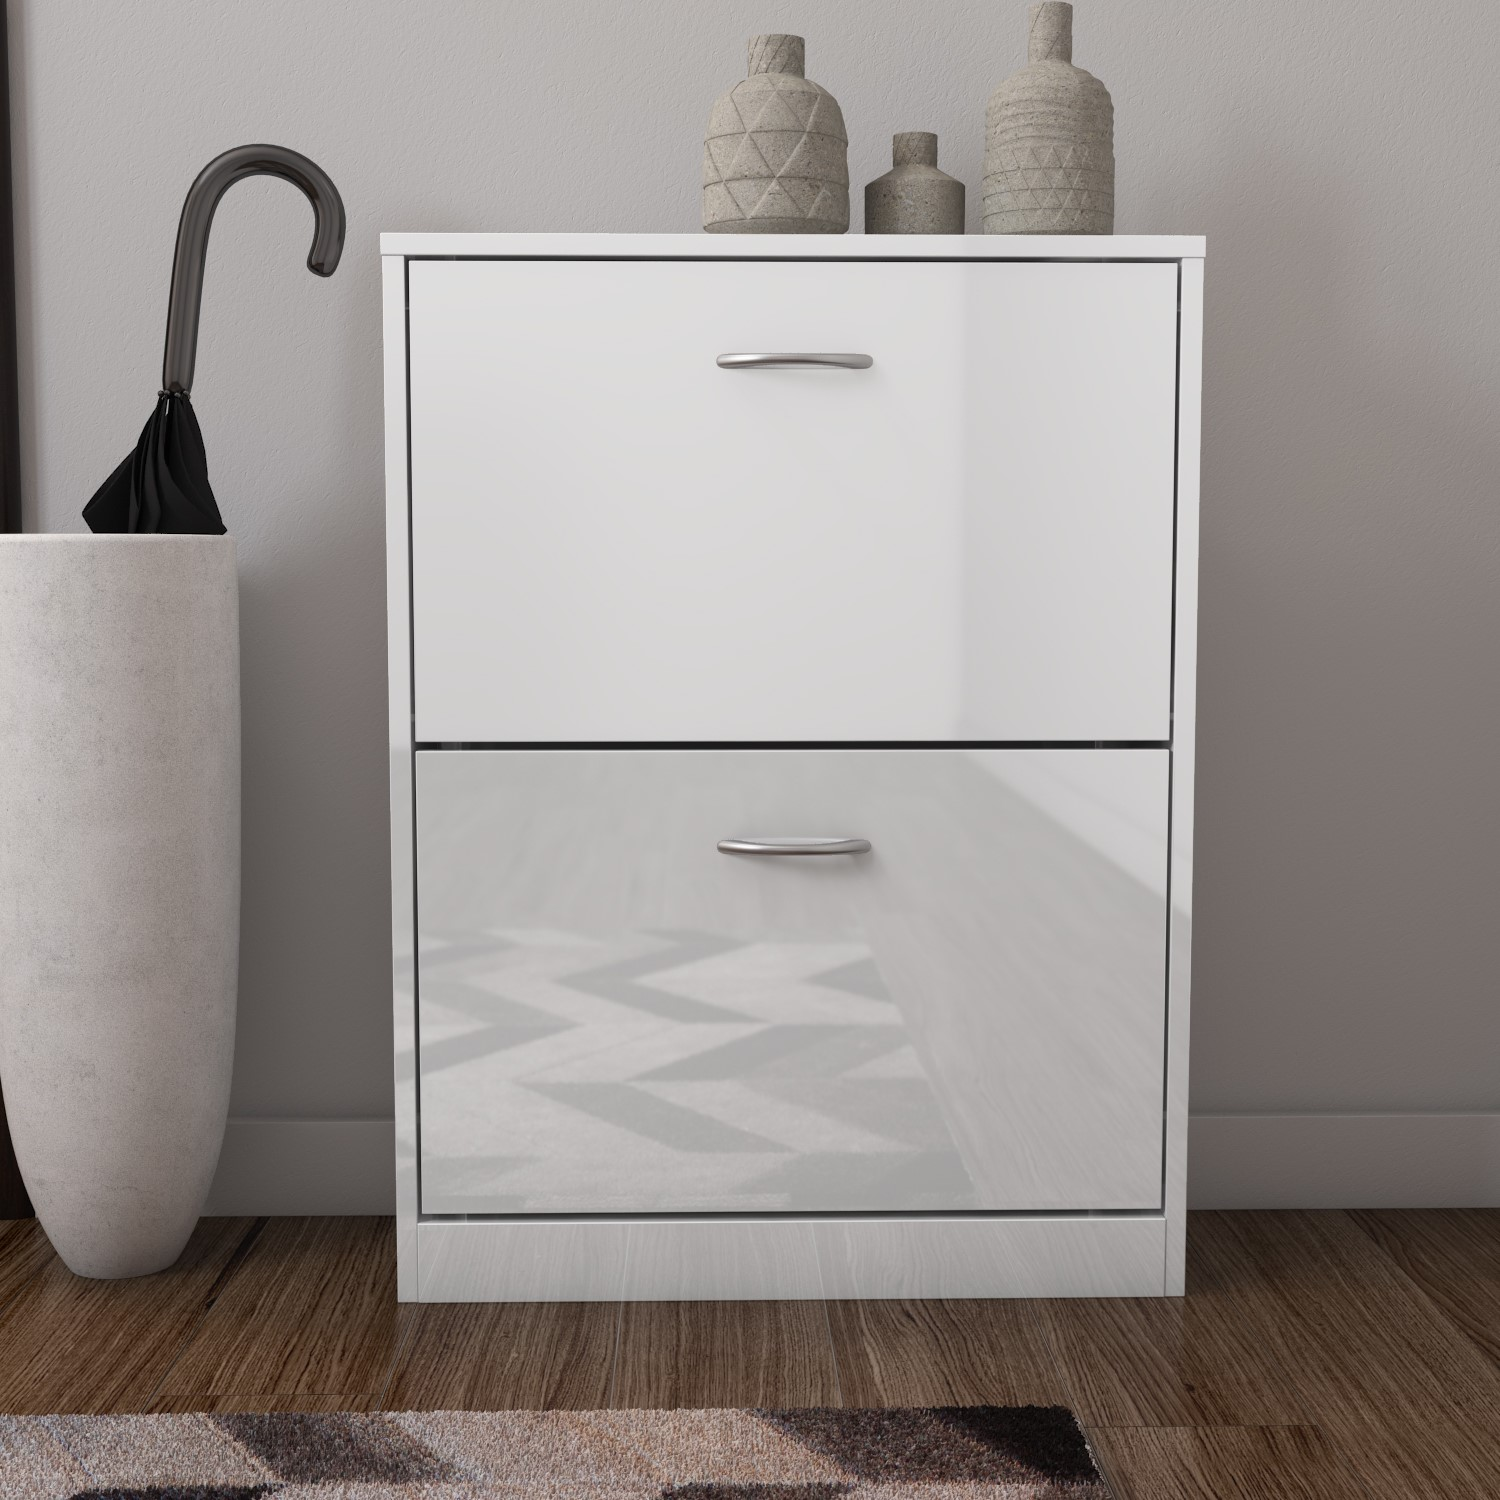 Torino 2 Drawer Shoe Storage Cabinet in White High Gloss - 6 Pairs : shoe cabinets - Cheerinfomania.Com